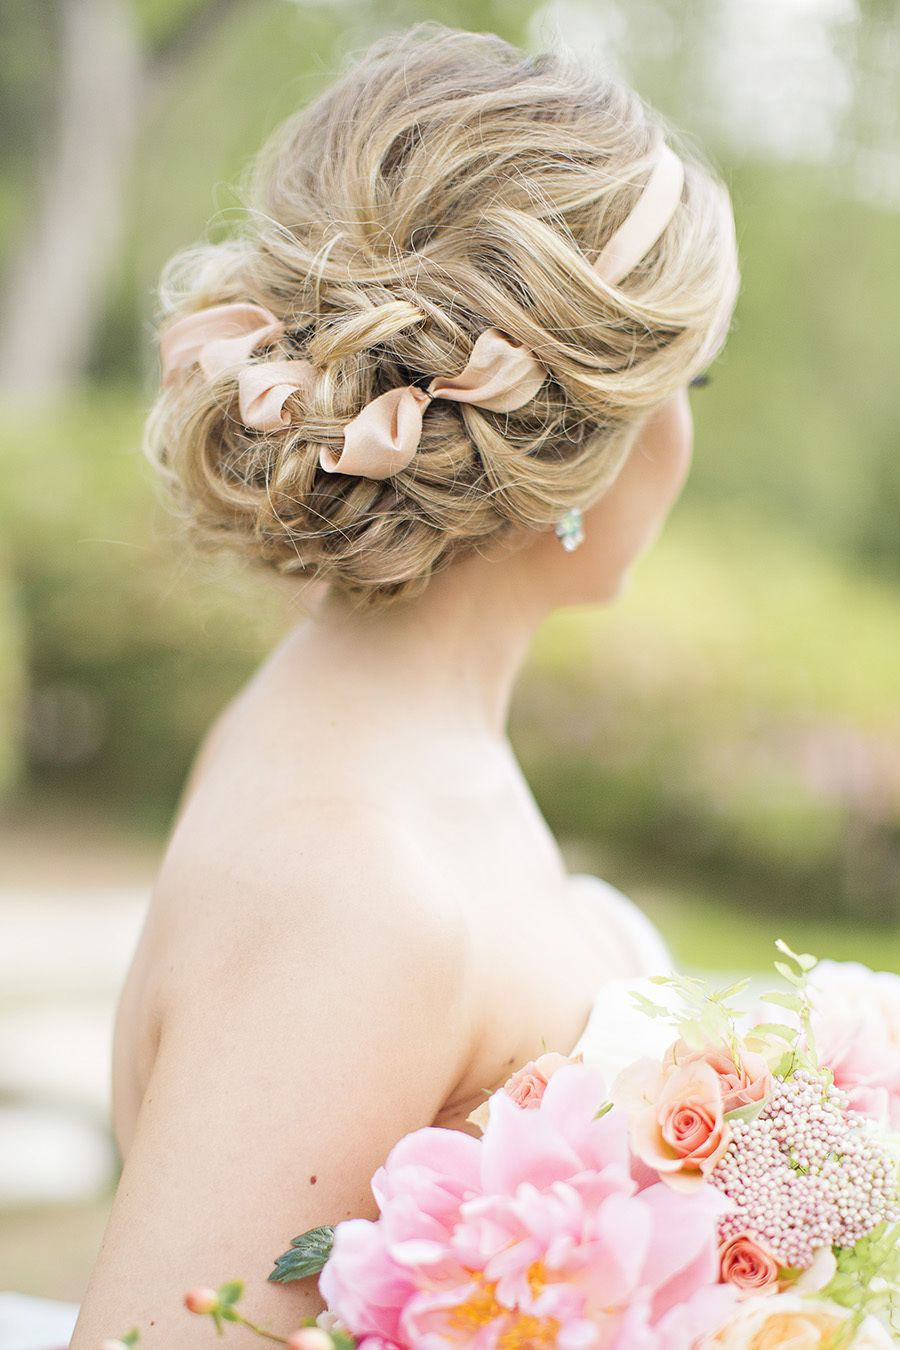 Lace a ribbon through your hair for the perfect wedding day updo